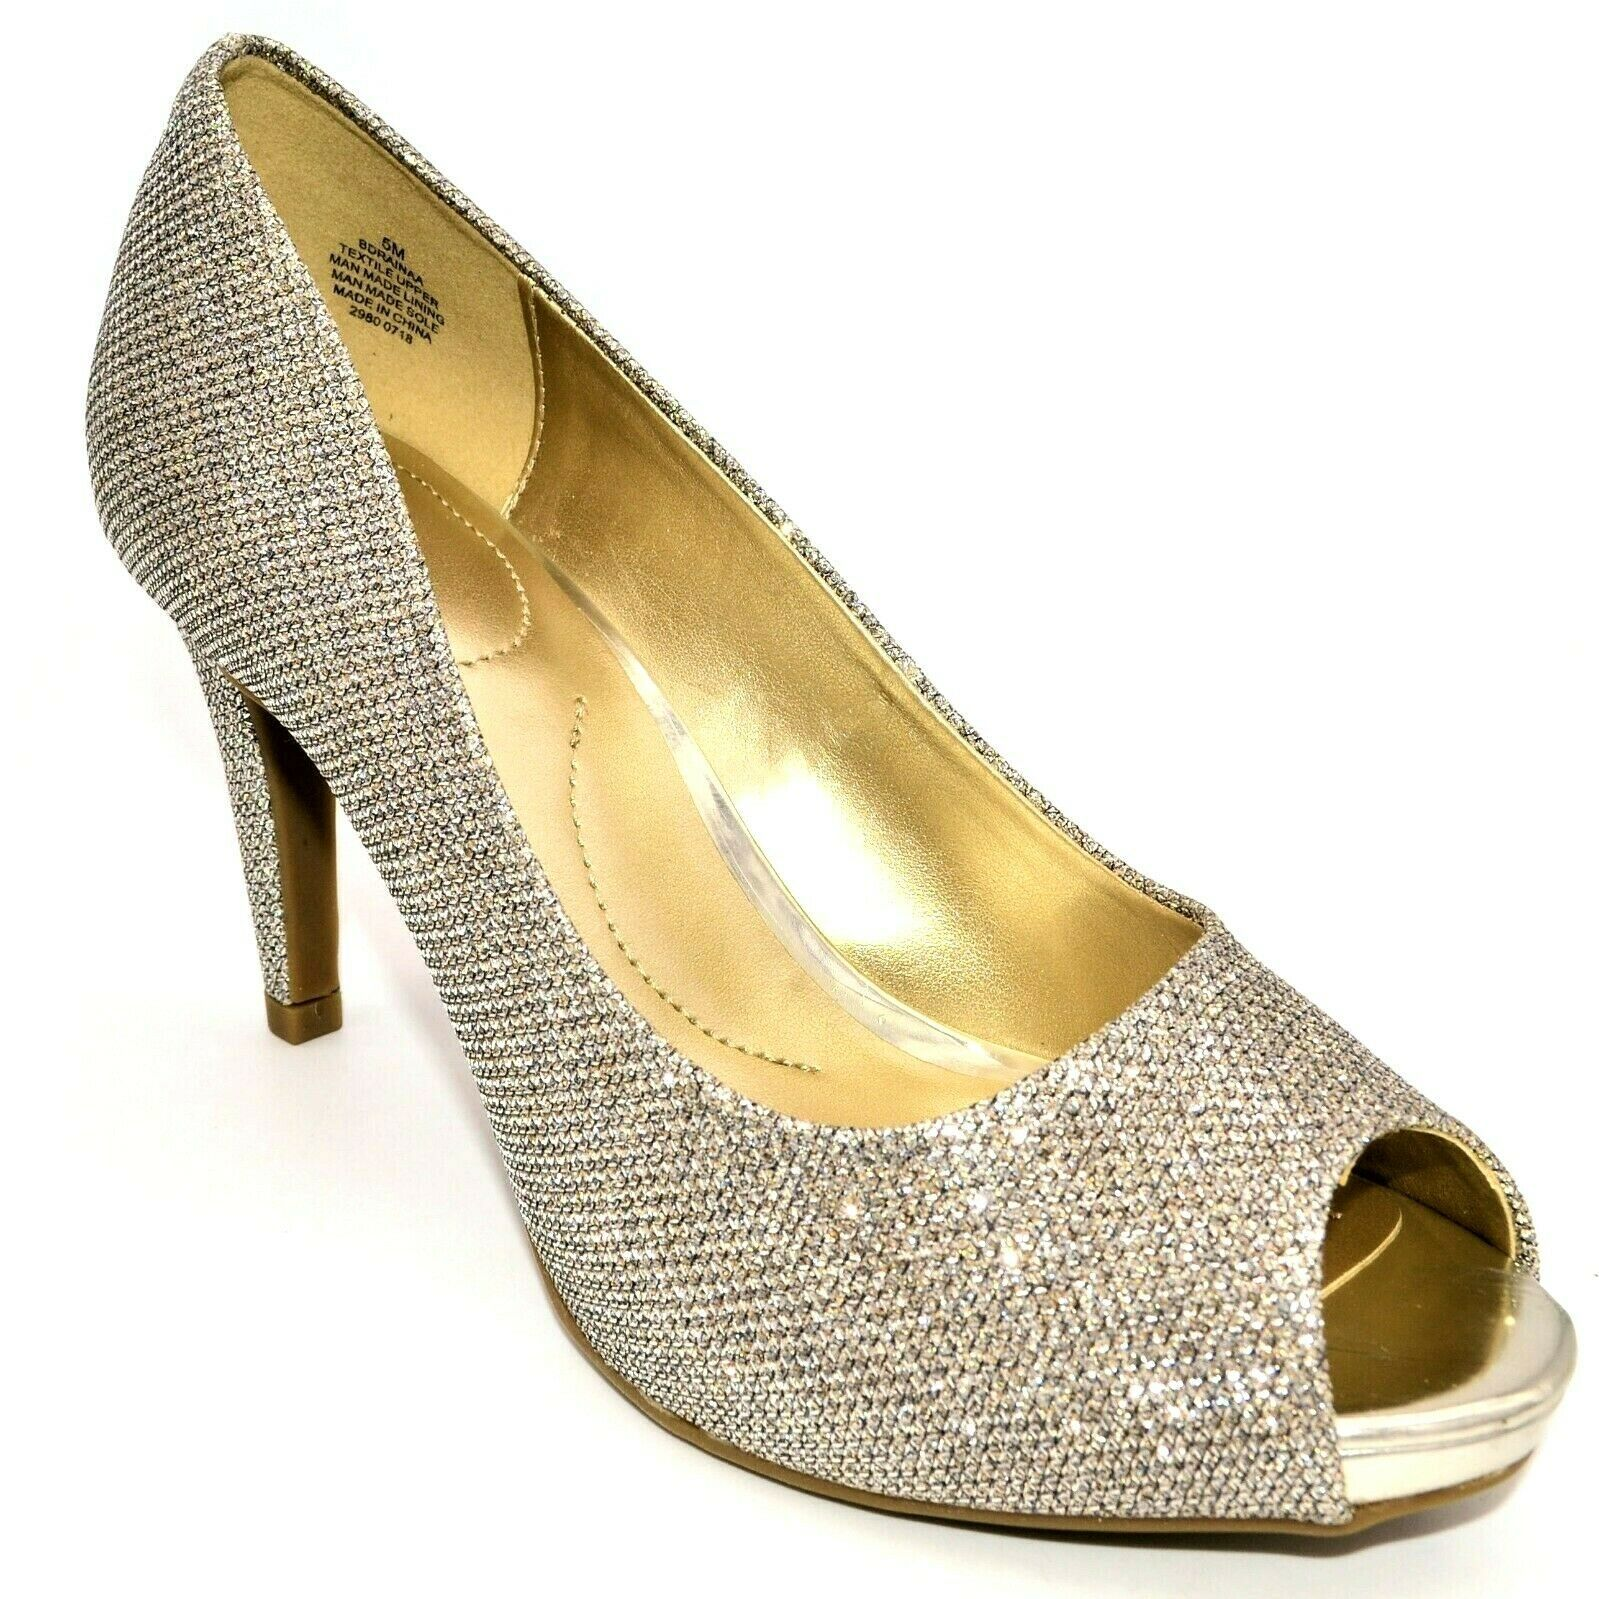 Bandolino Womens Rainaa Peep-Toe Pumps Size 5M Gold Glitter Cushioned Insole NEW - $25.02